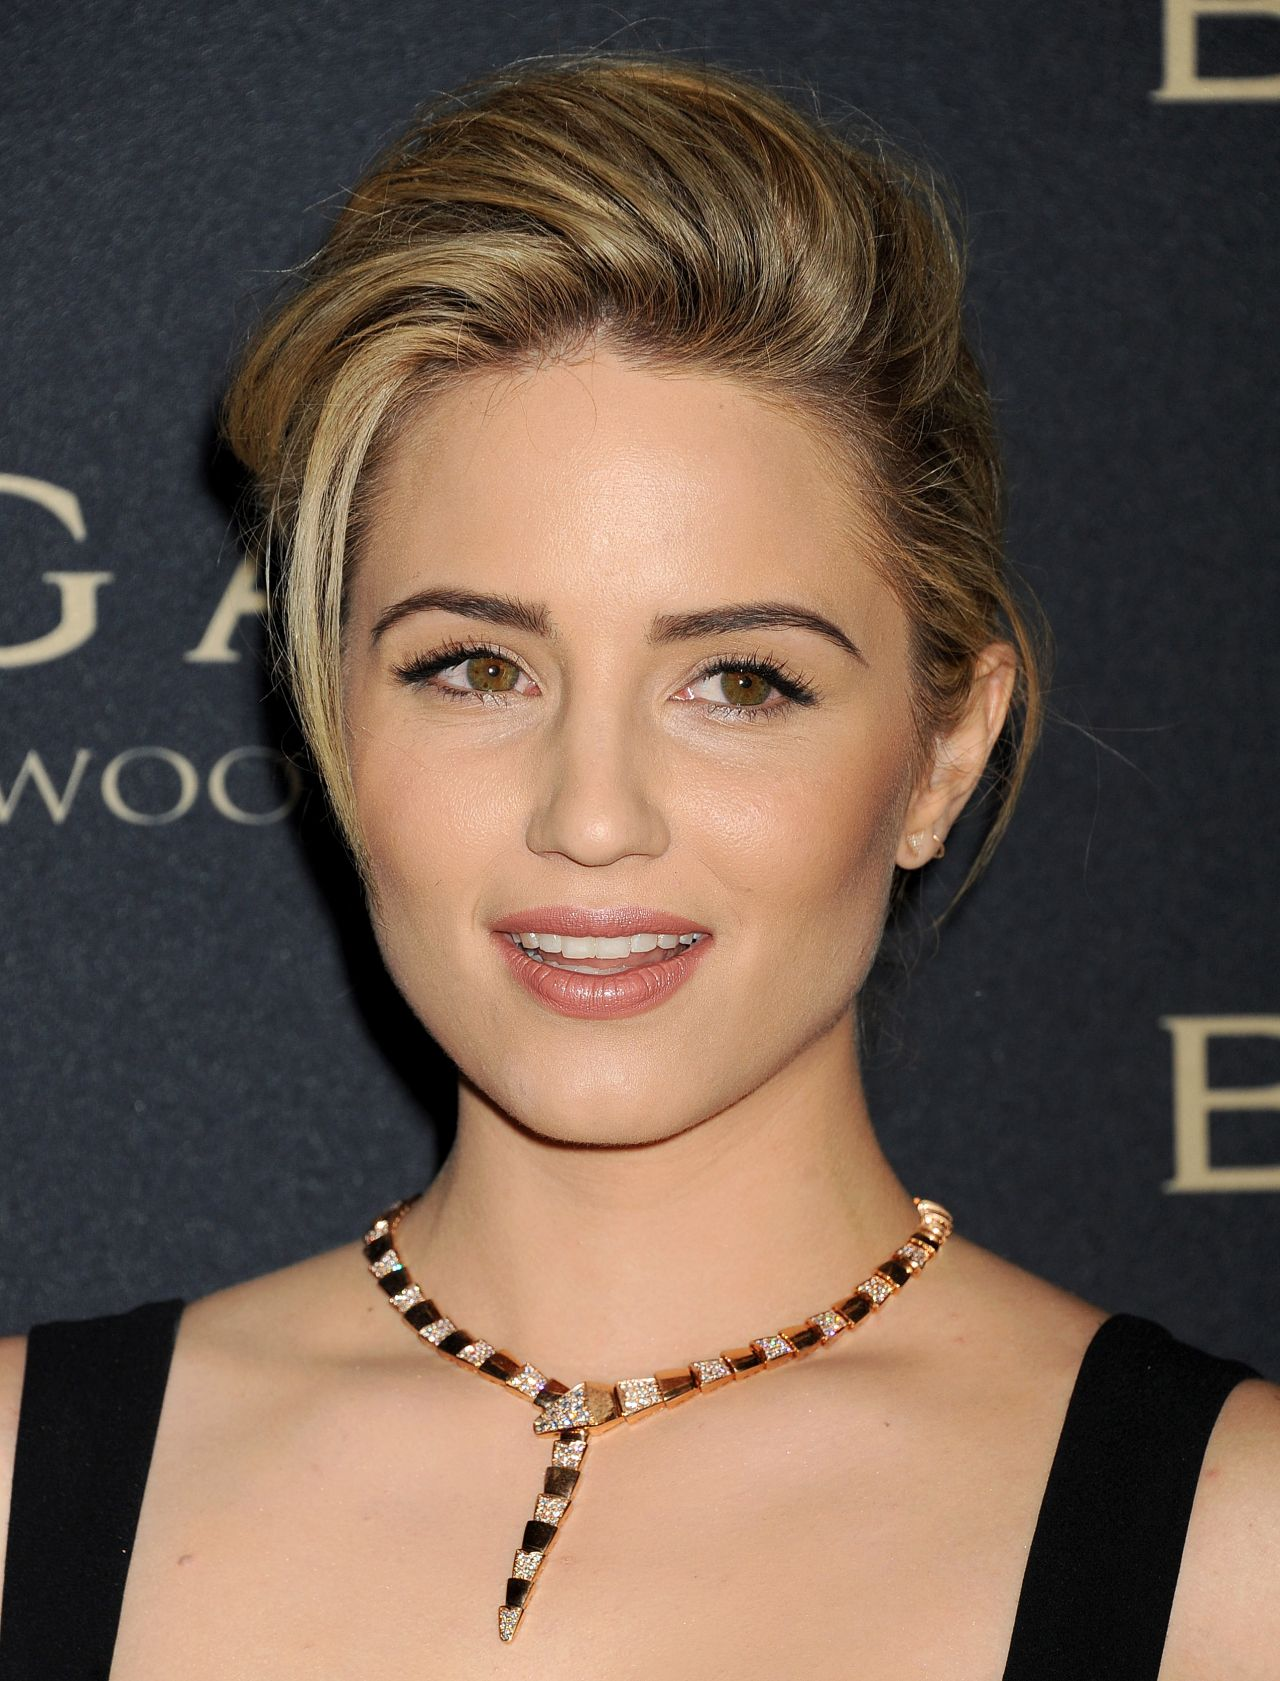 Dianna Agron - Decades of Glamour Event in West Hollywood, Feb. 2014